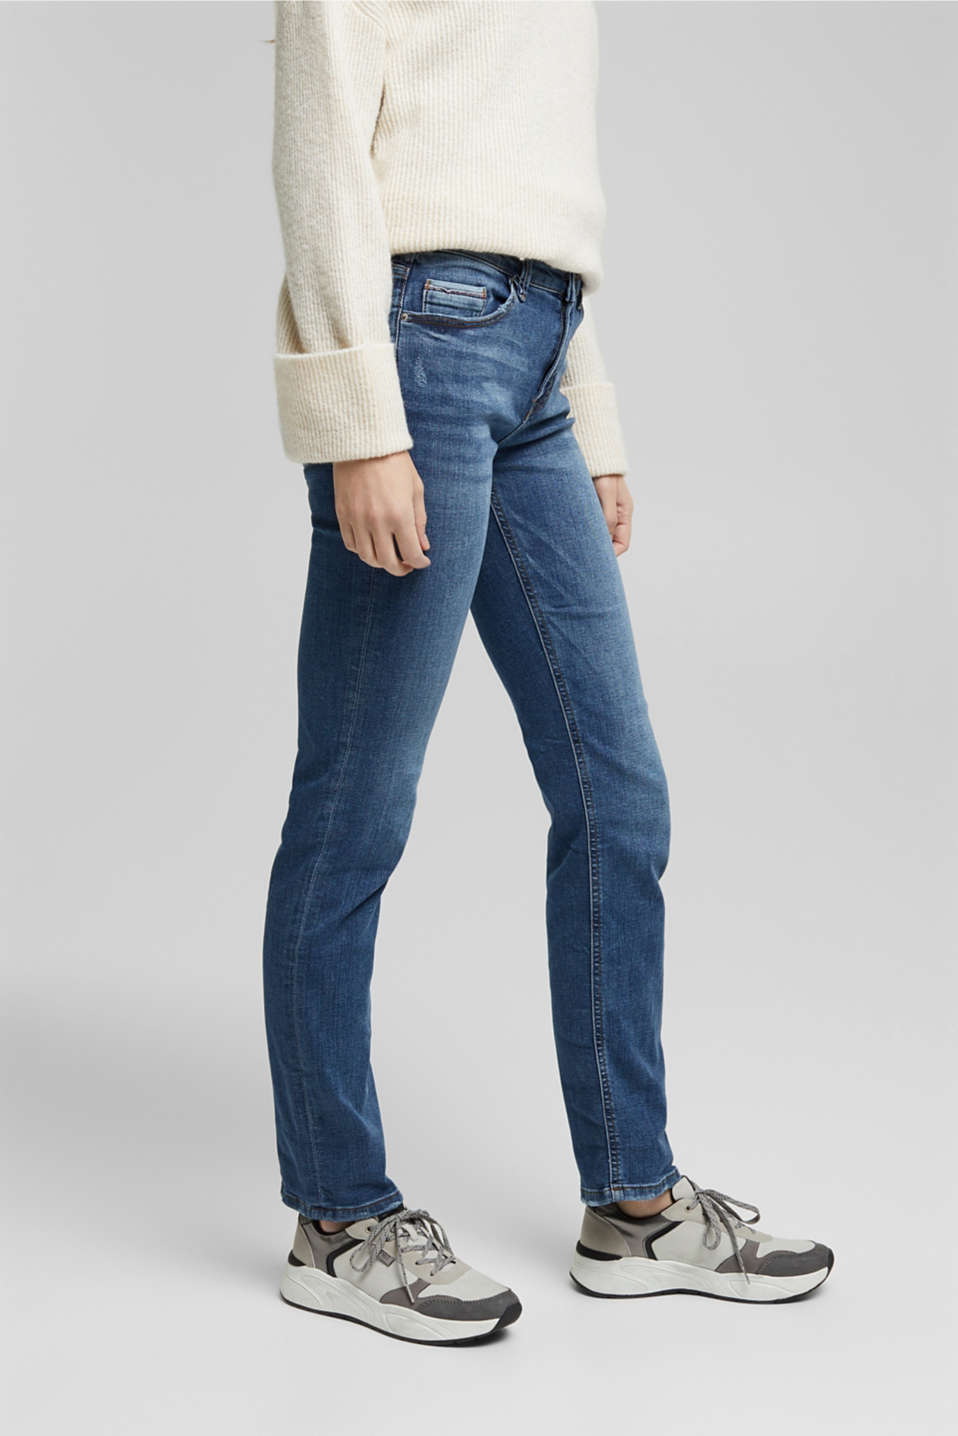 Esprit - Jeans super stretch con cotone biologico